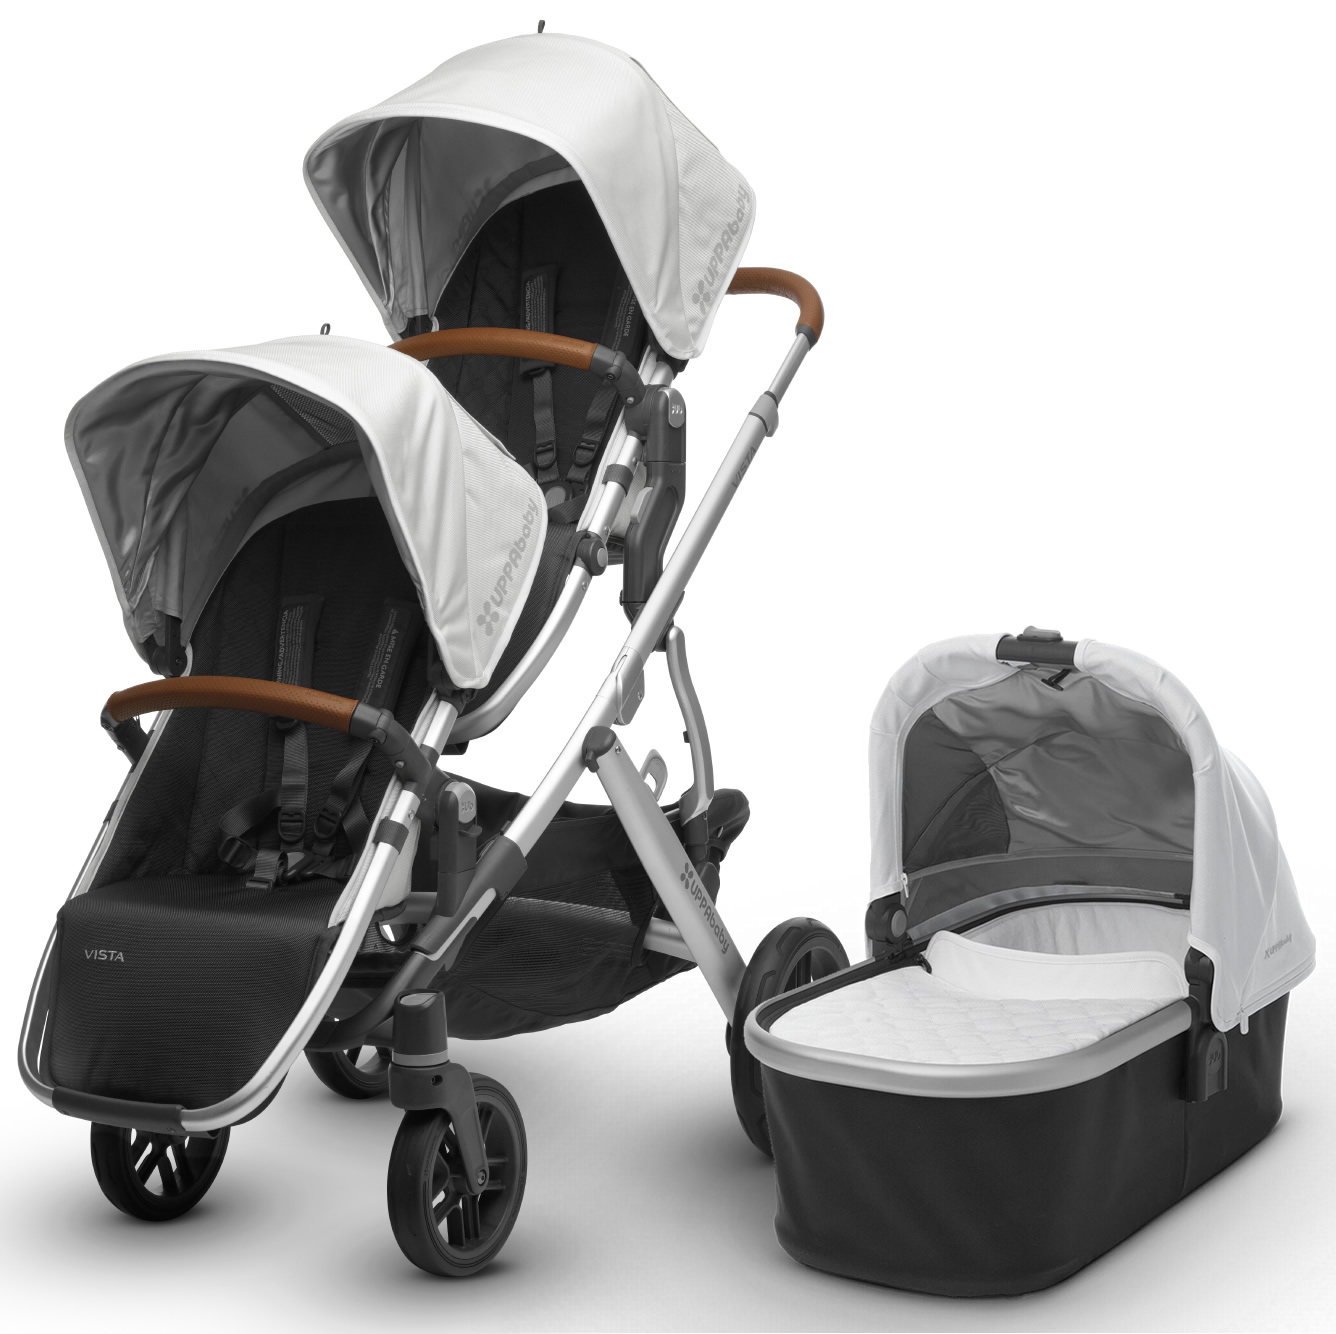 Uppa Baby 2018 Vista Double Stroller - Loic (White/Silver/Saddle Leather)